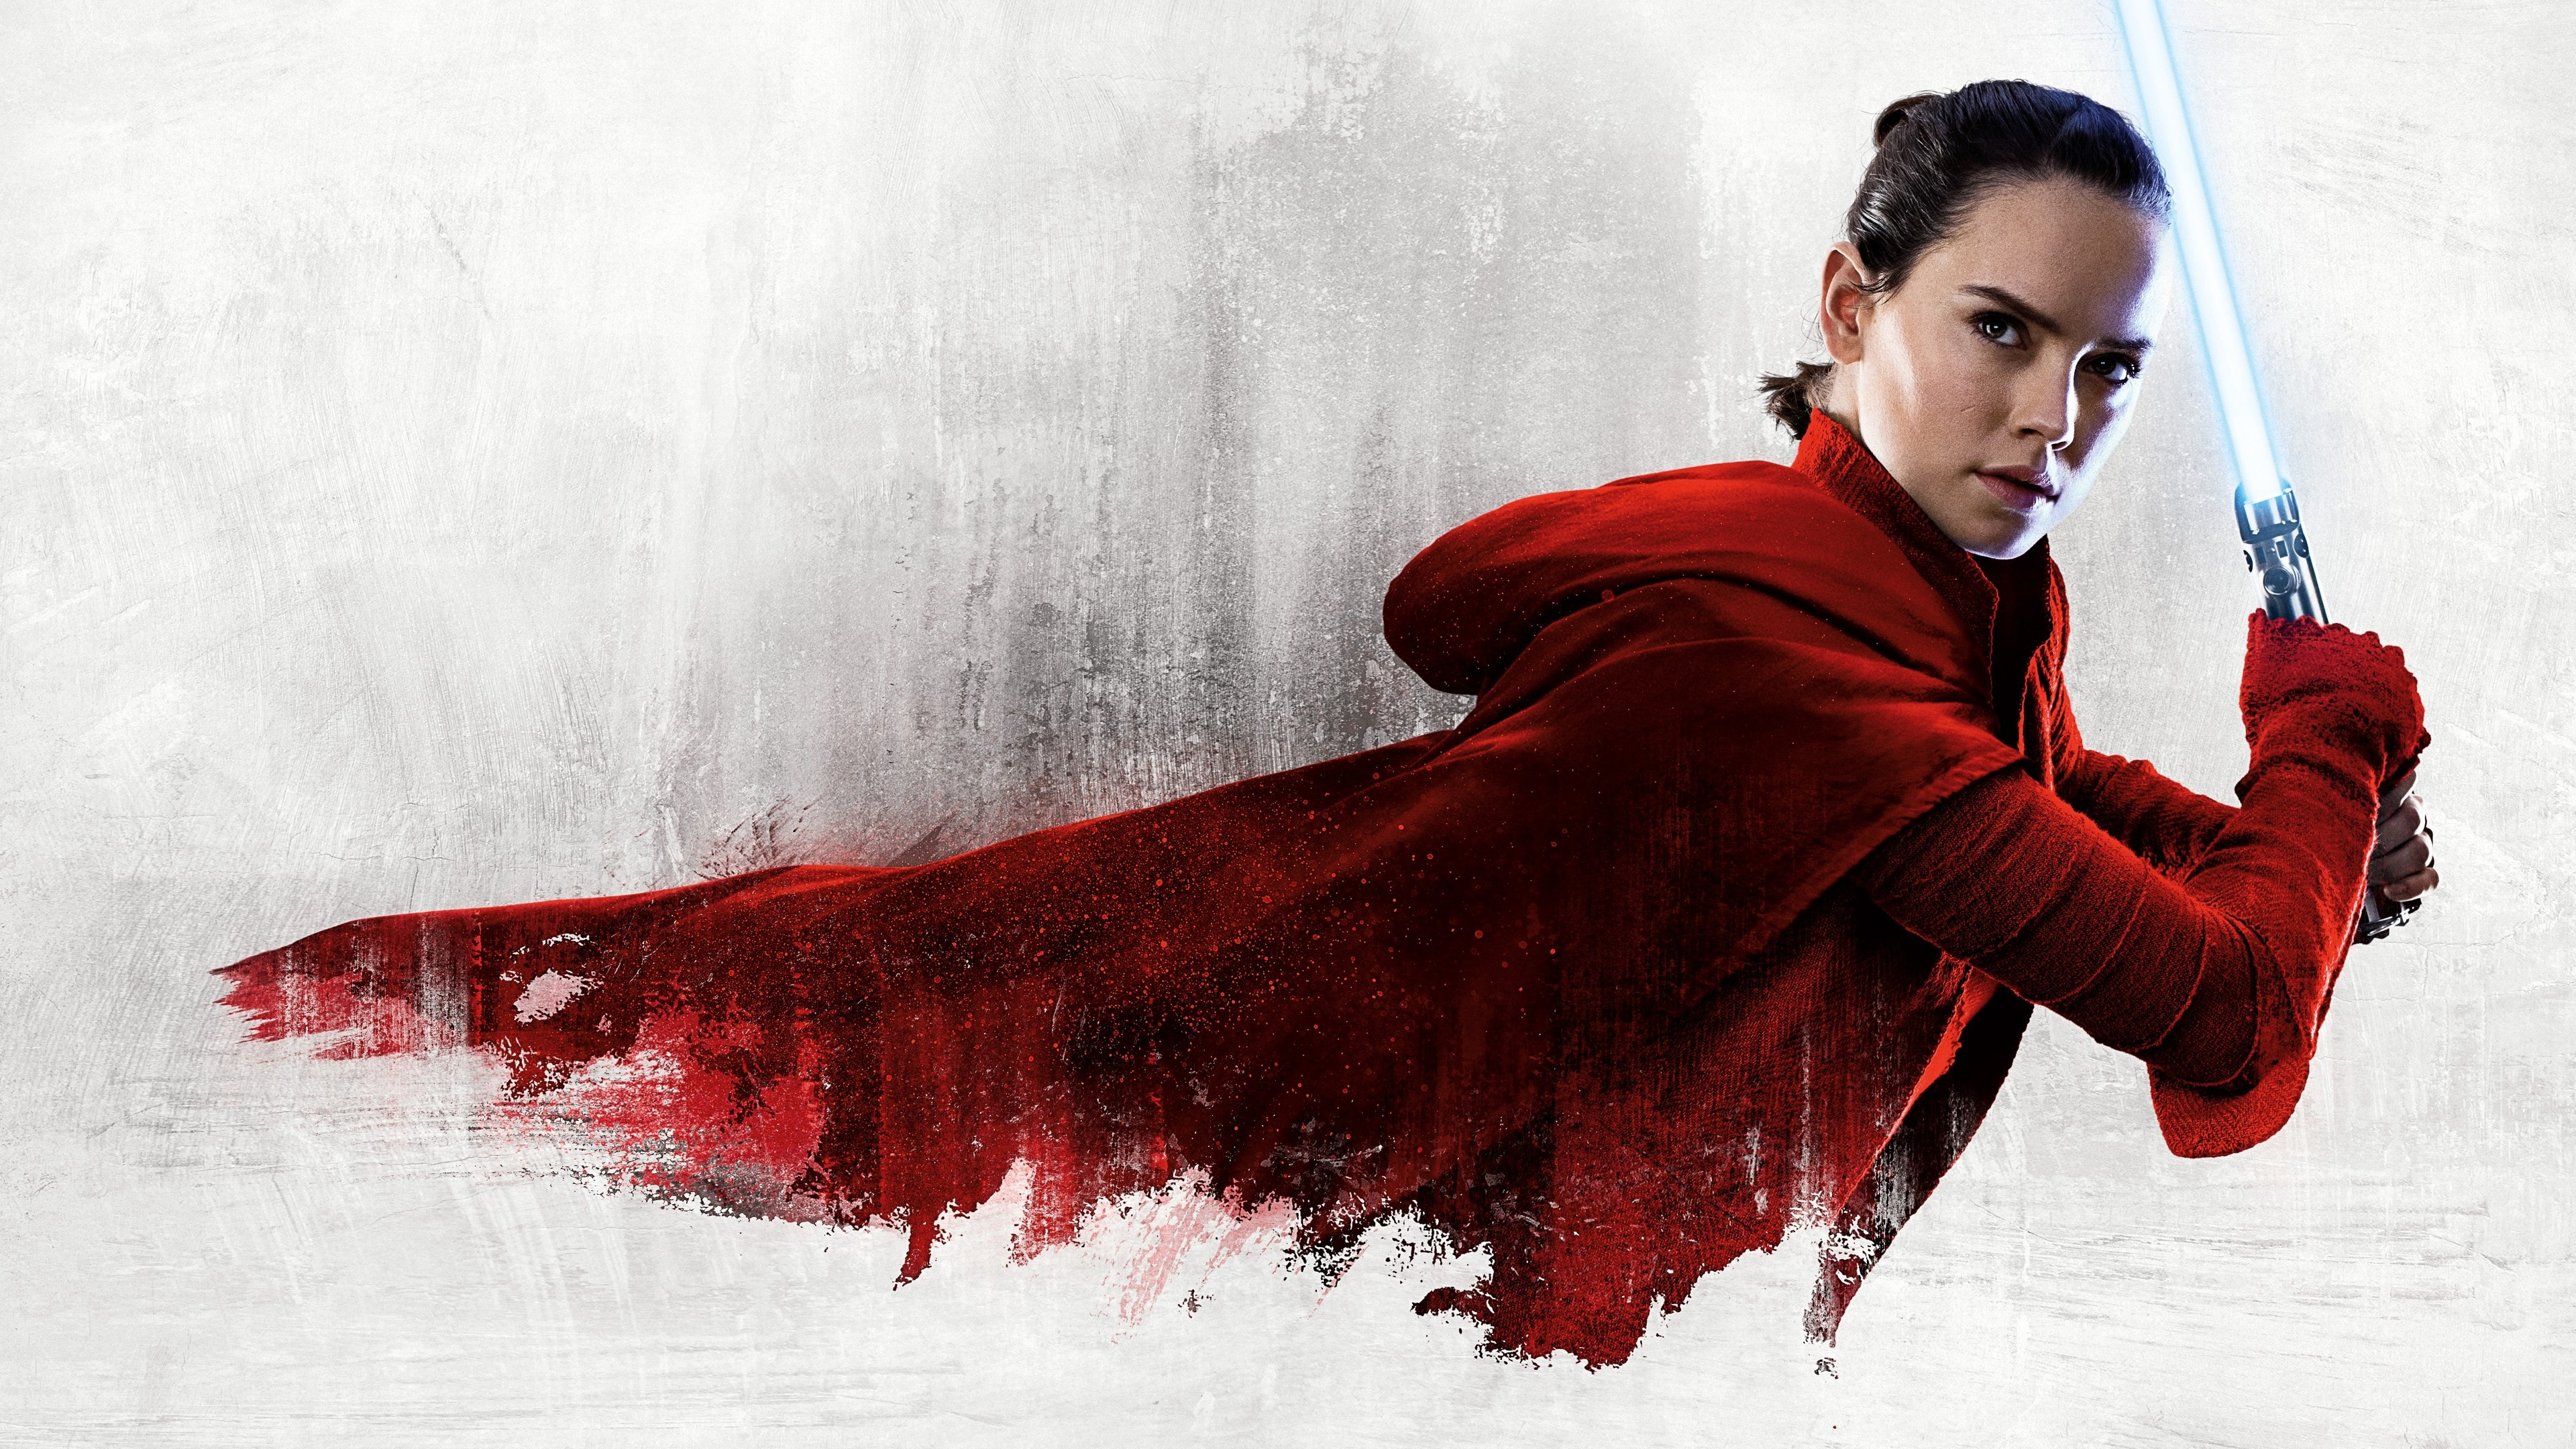 Rey Daisy Ridley Star Wars The Last Jedi 4k 2196 Wallpapers and 3840x2160